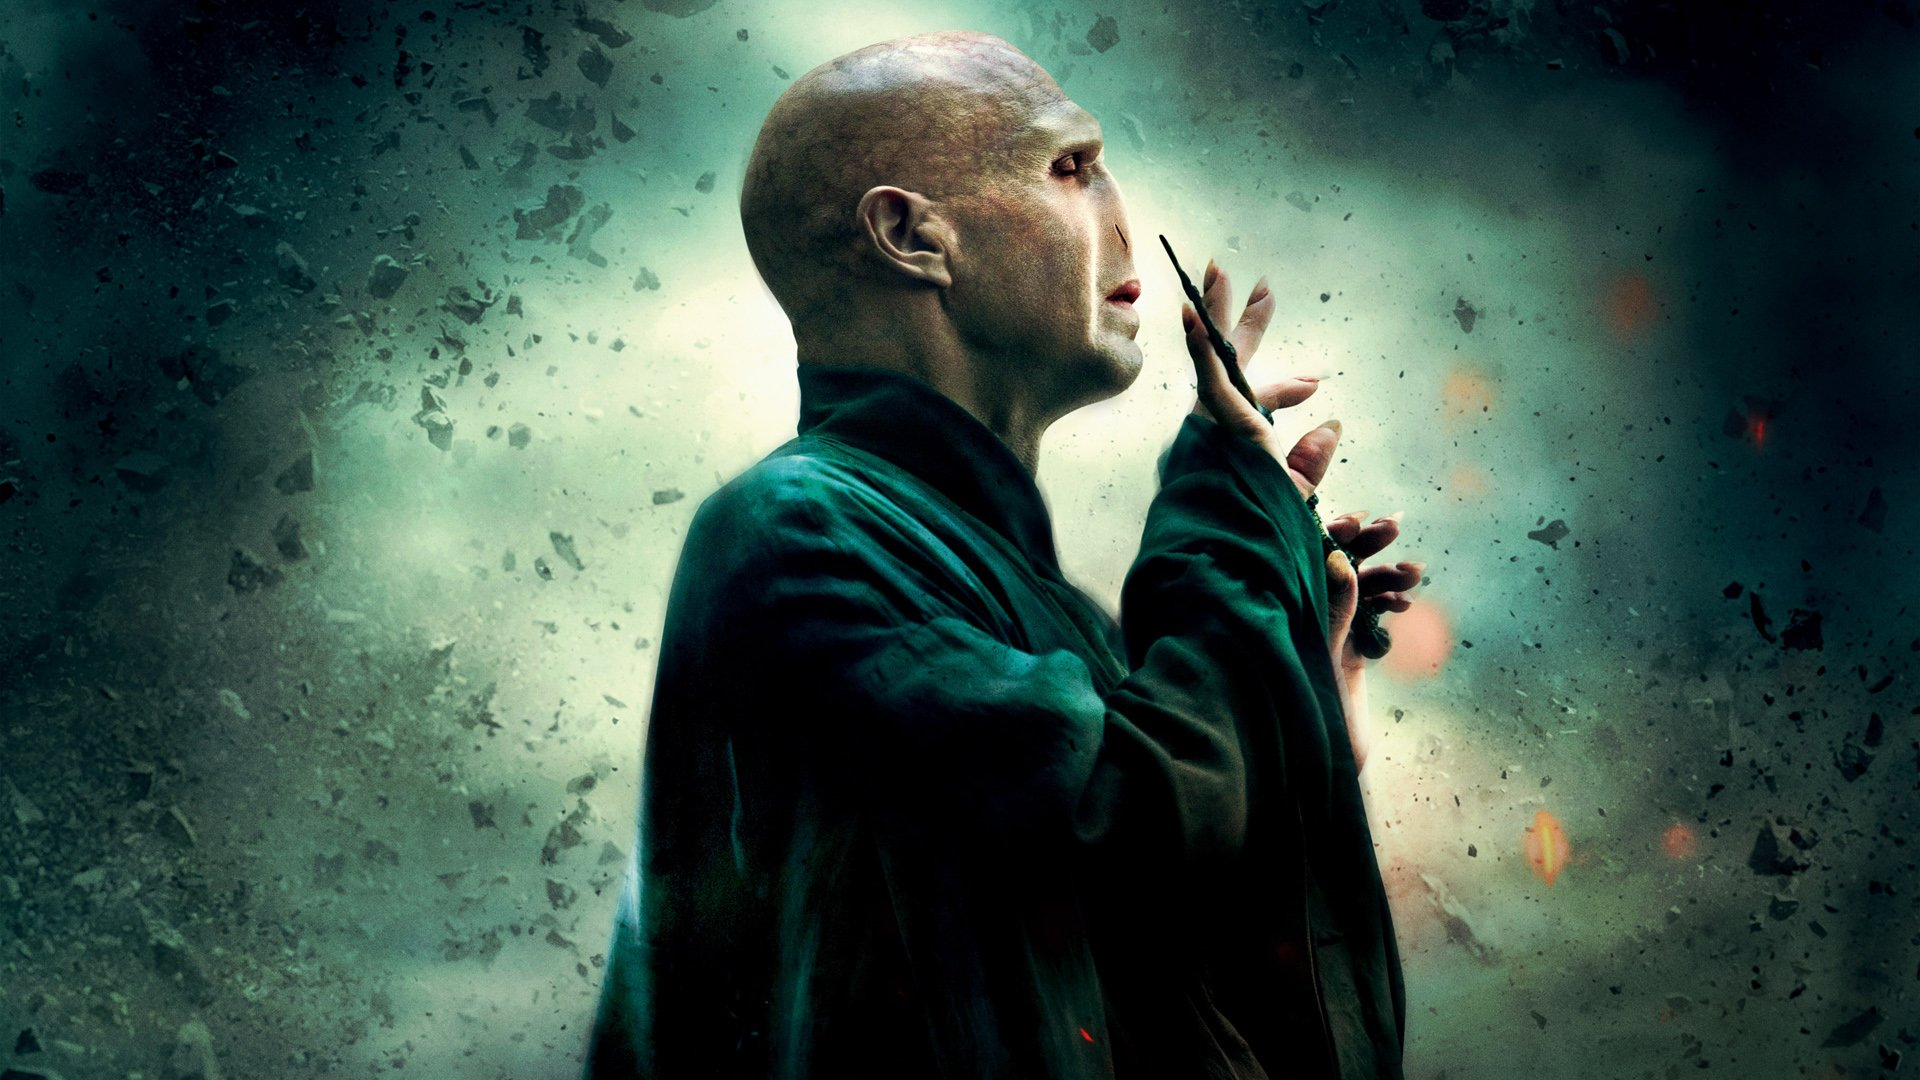 lord voldemort – harry potter | ps4wallpapers